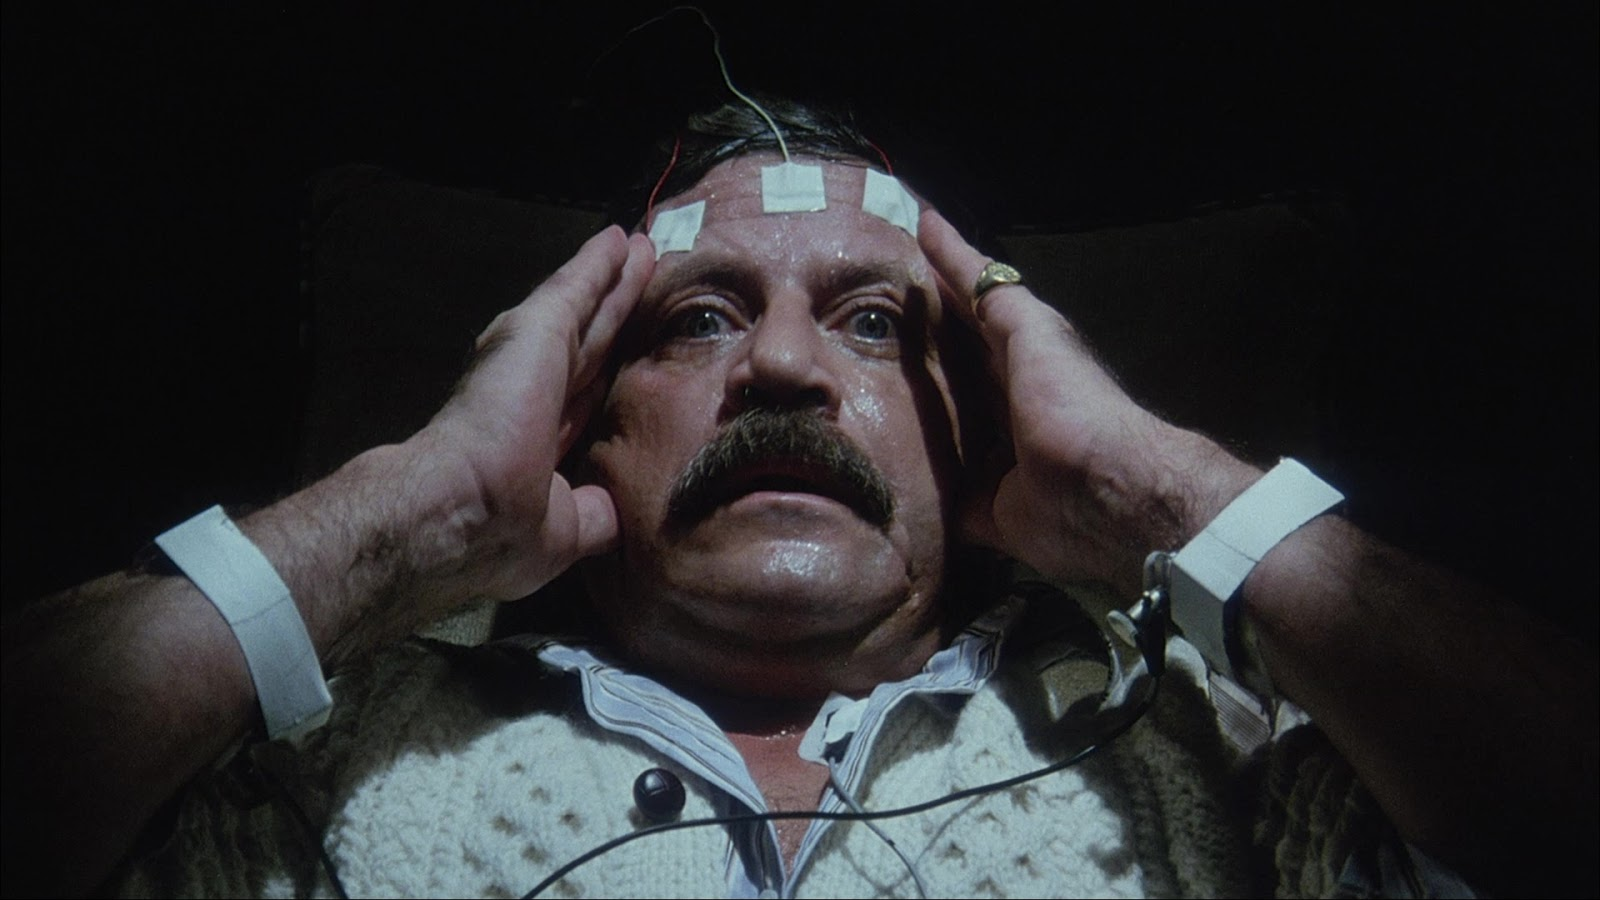 Billionaire Oliver Reed develops a psychic link with a giant snake in Spasms (1983)